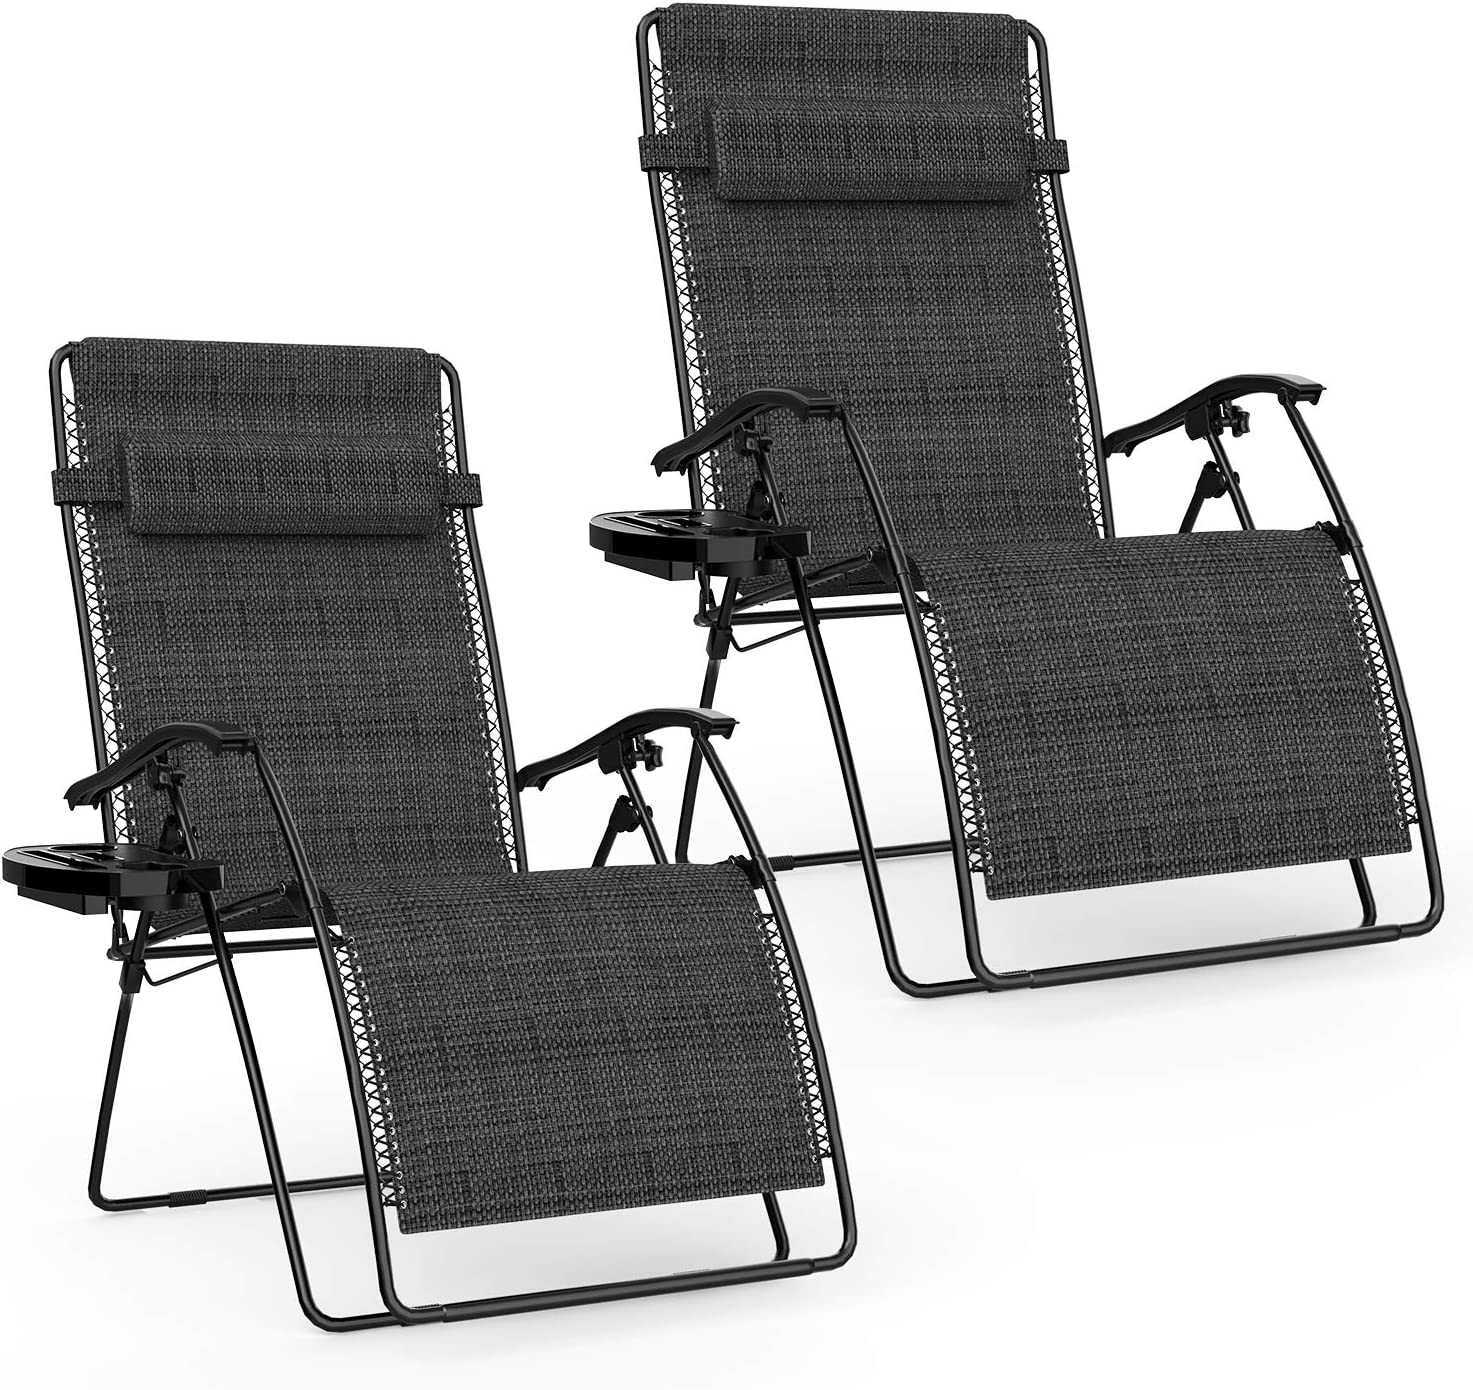 Keten Zero Gravity Chair, Patio Folding Lounge Chair Recliners, Adjustable Lawn Lounge Chair with Pillows Replacement Cords Cup Holders for Backyard Poolside Beach Set of 2(Black)